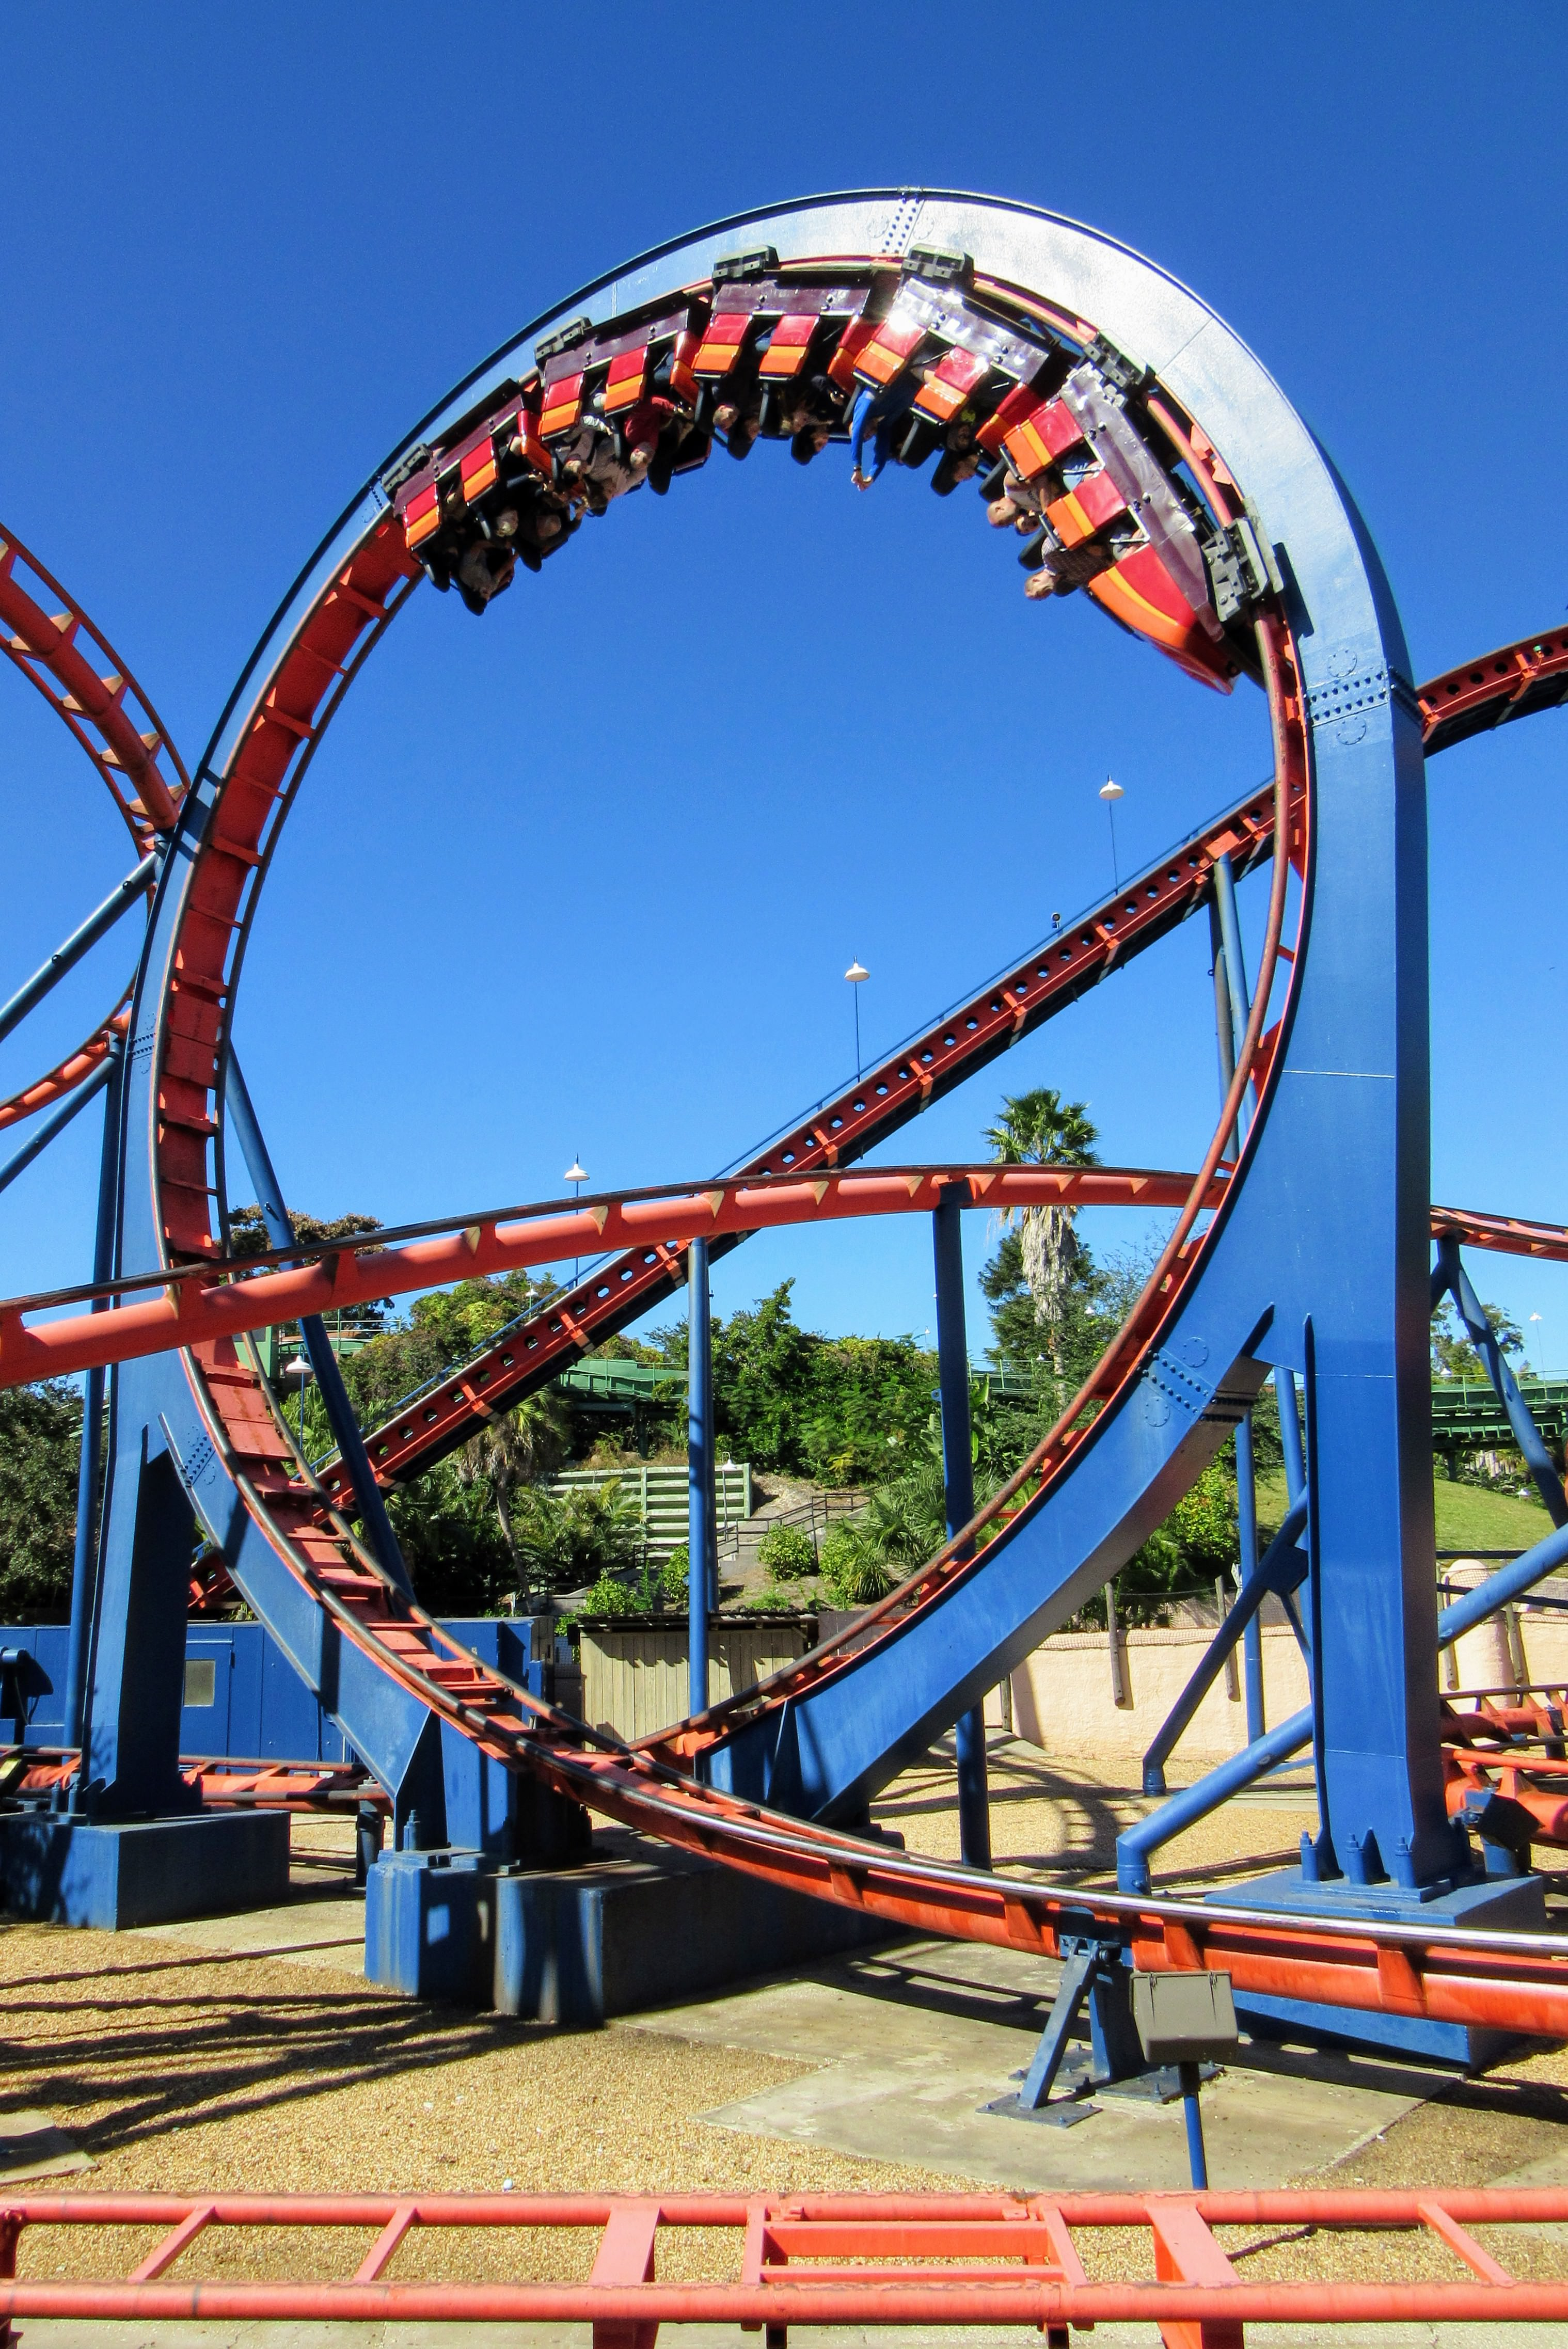 Visiting busch gardens tampa bay a review tips my meena life for New rollercoaster at busch gardens